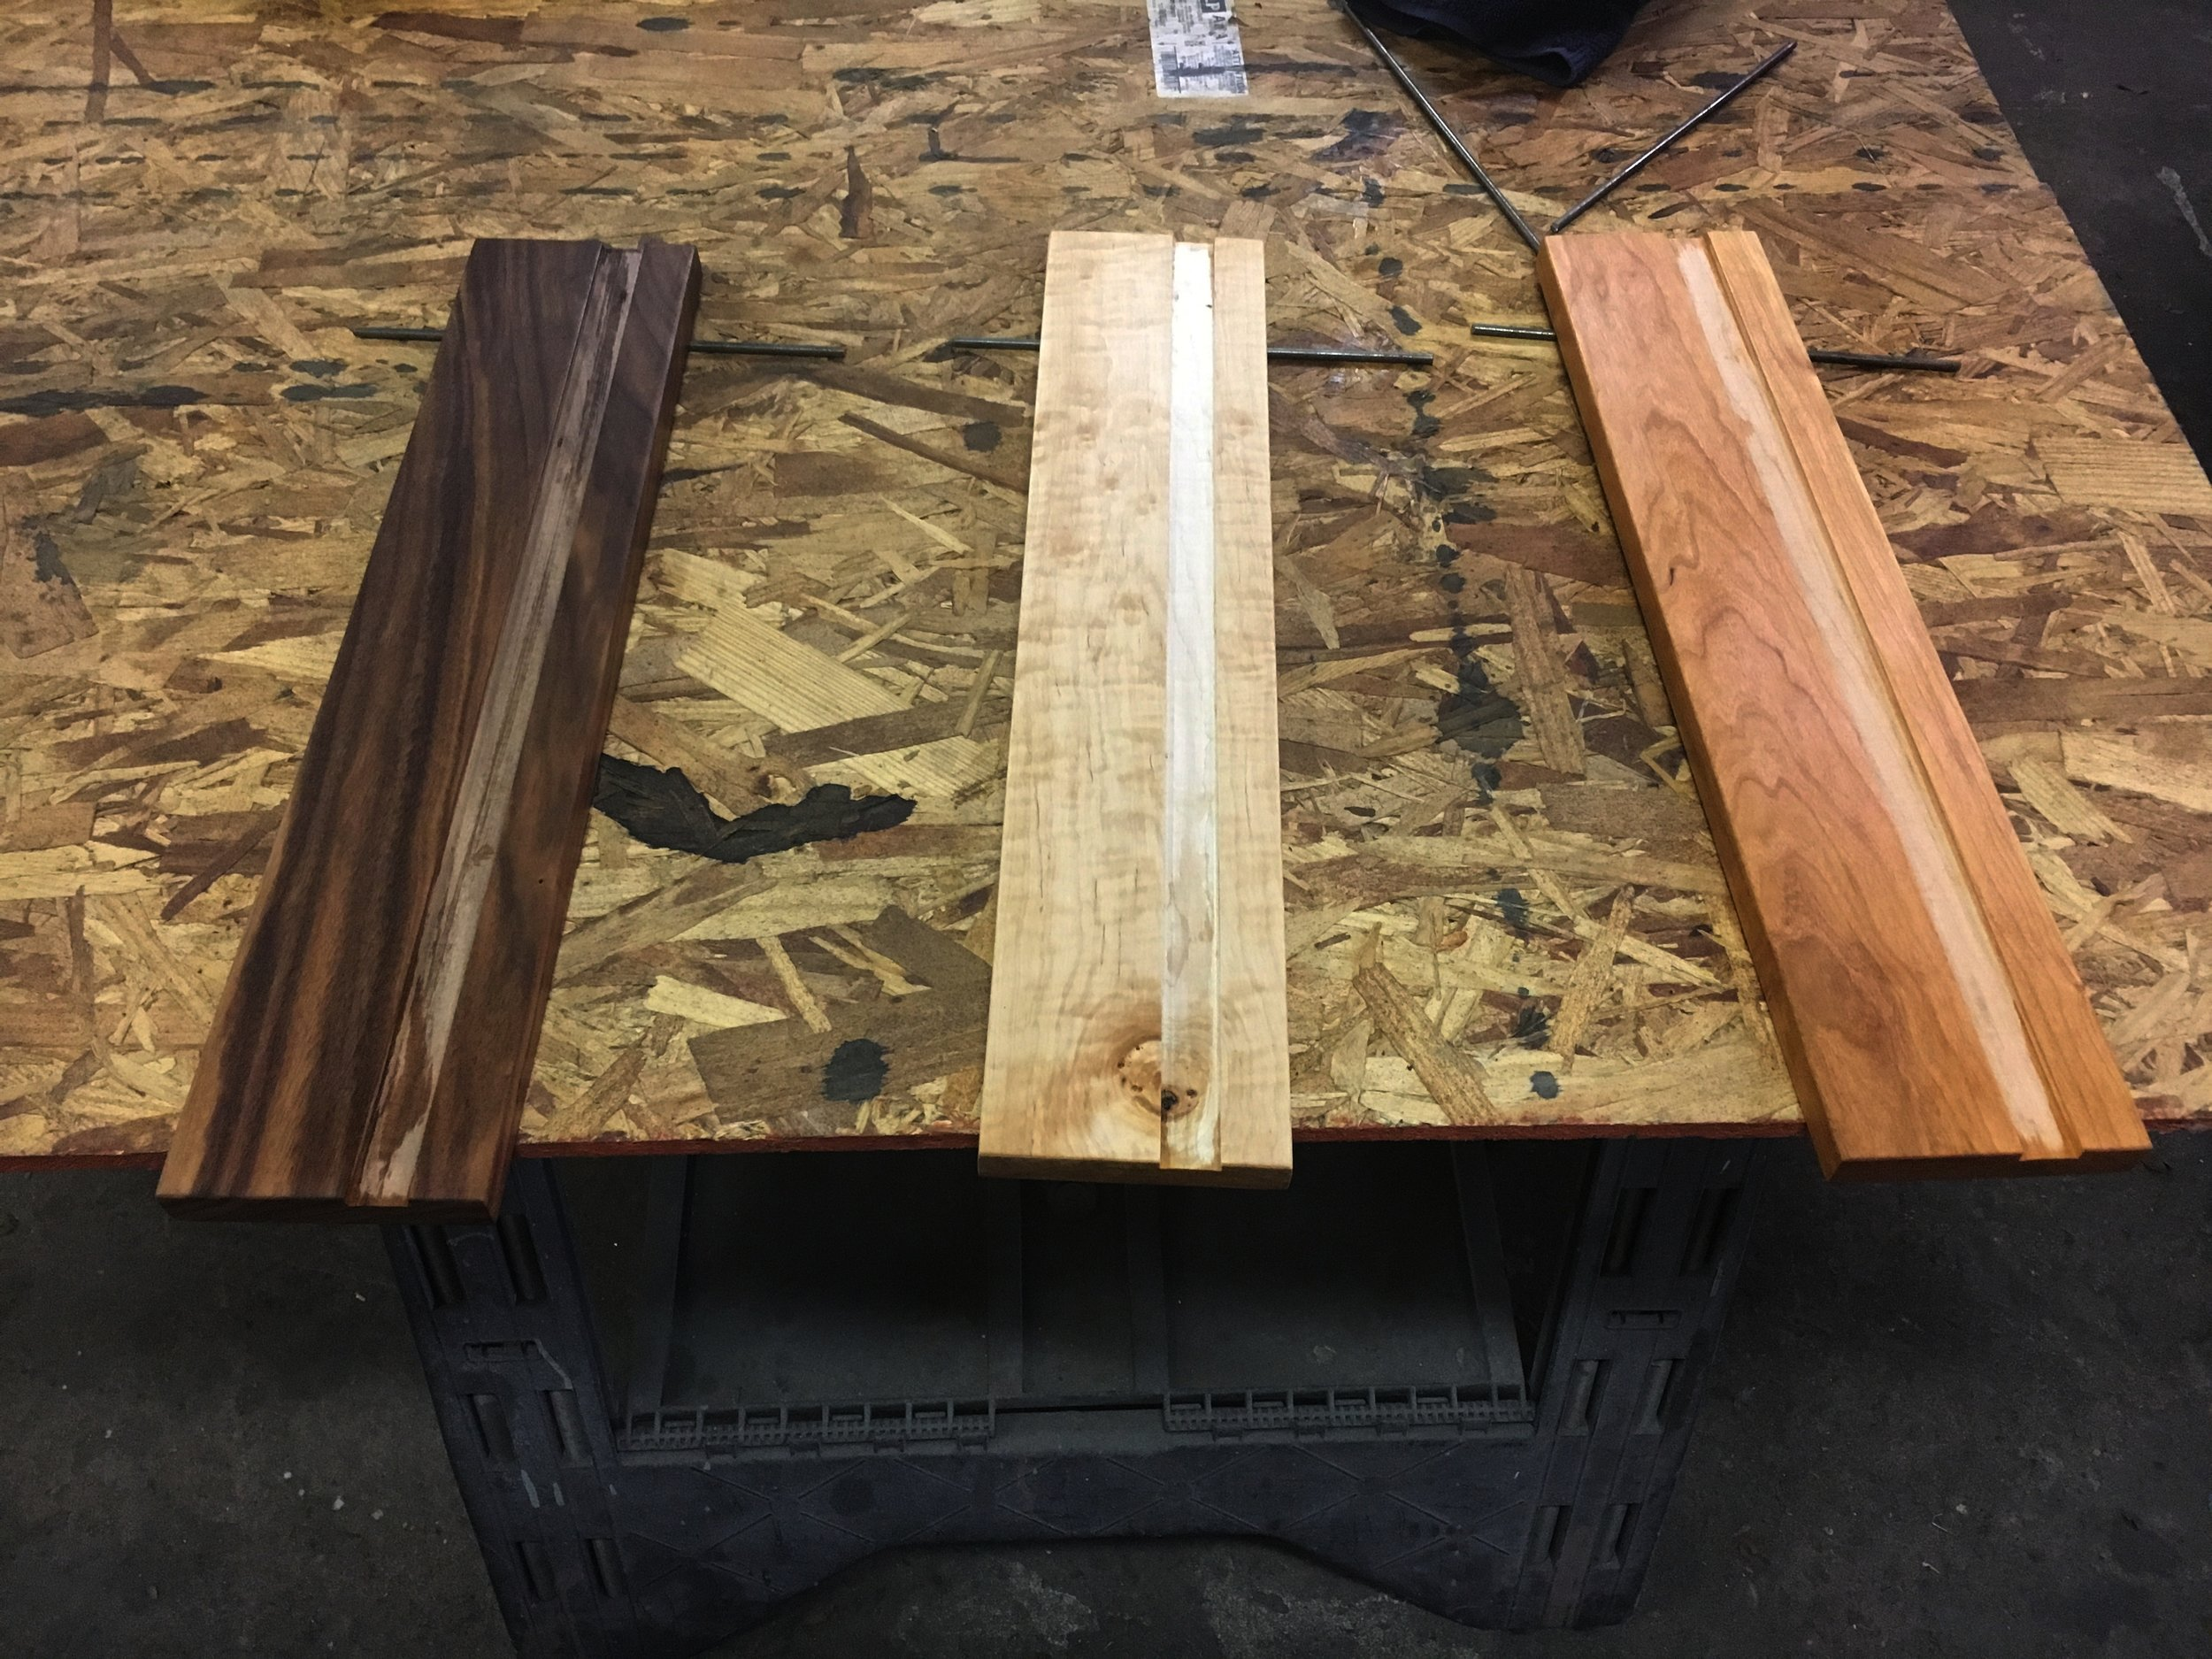 Wood frames for new mosaic coat pegs